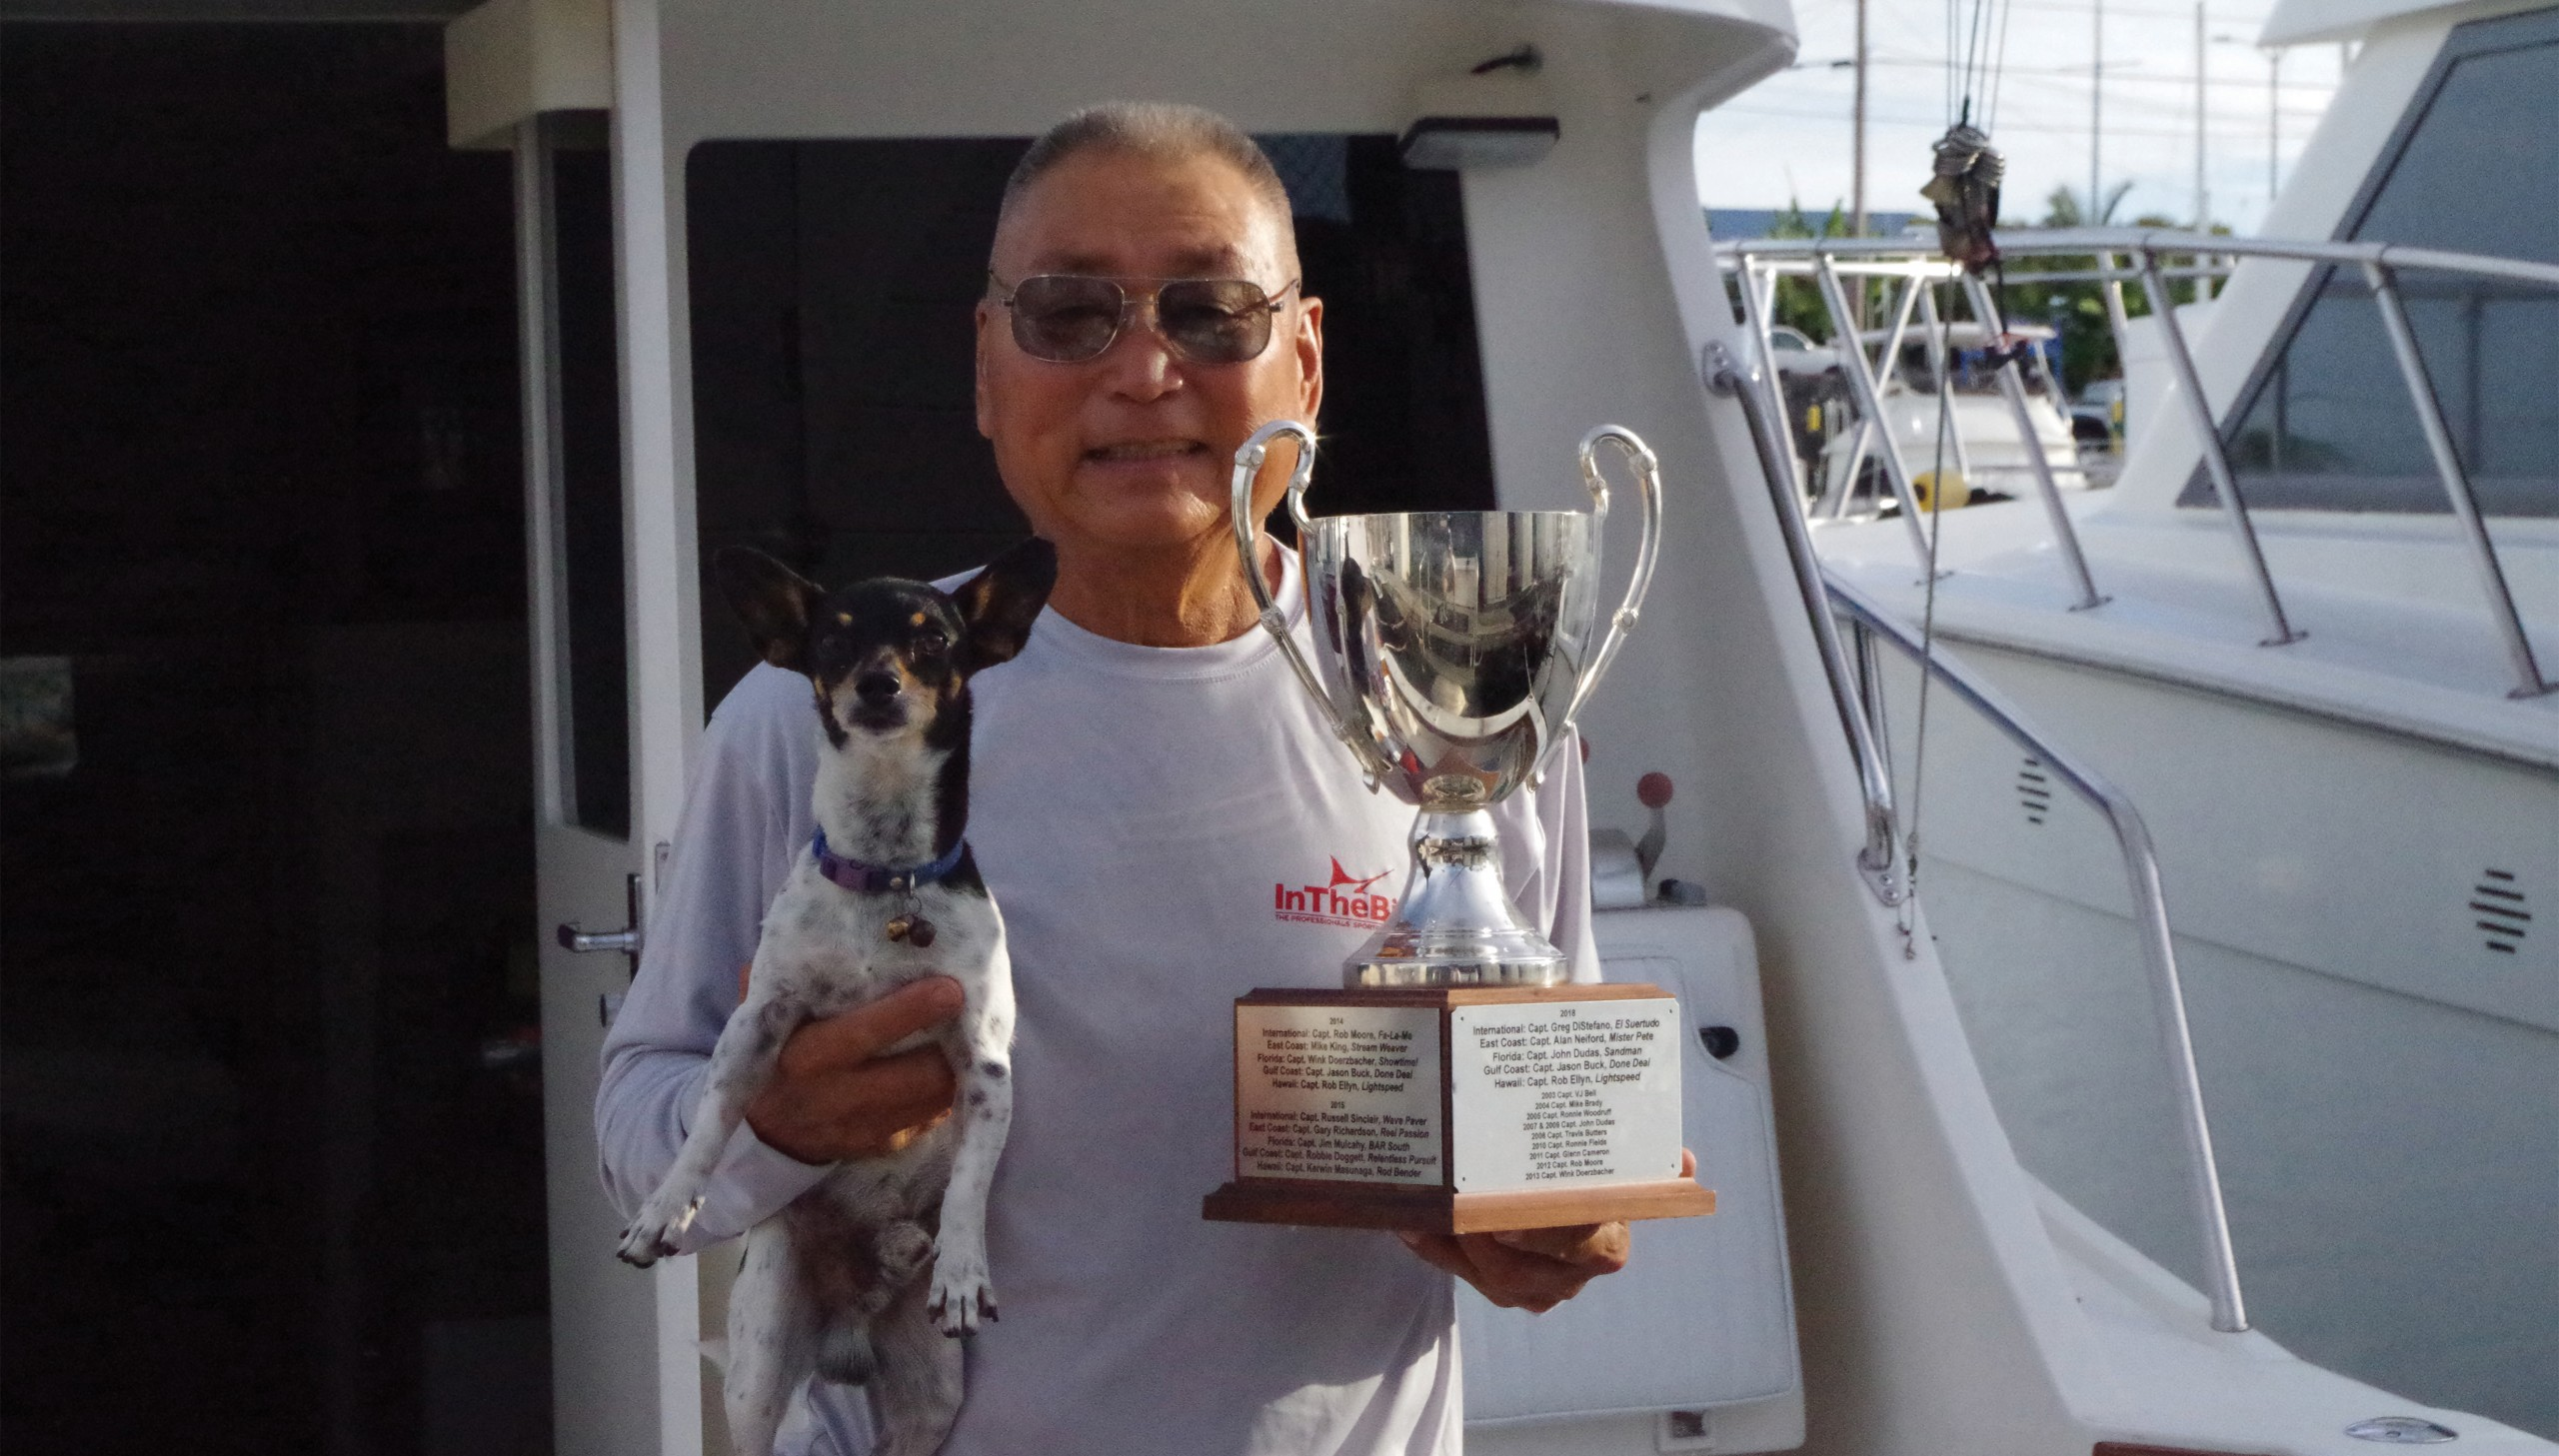 Captain Kerwin Maunaga holding a trophy in his left hand and a small dog in his right hand